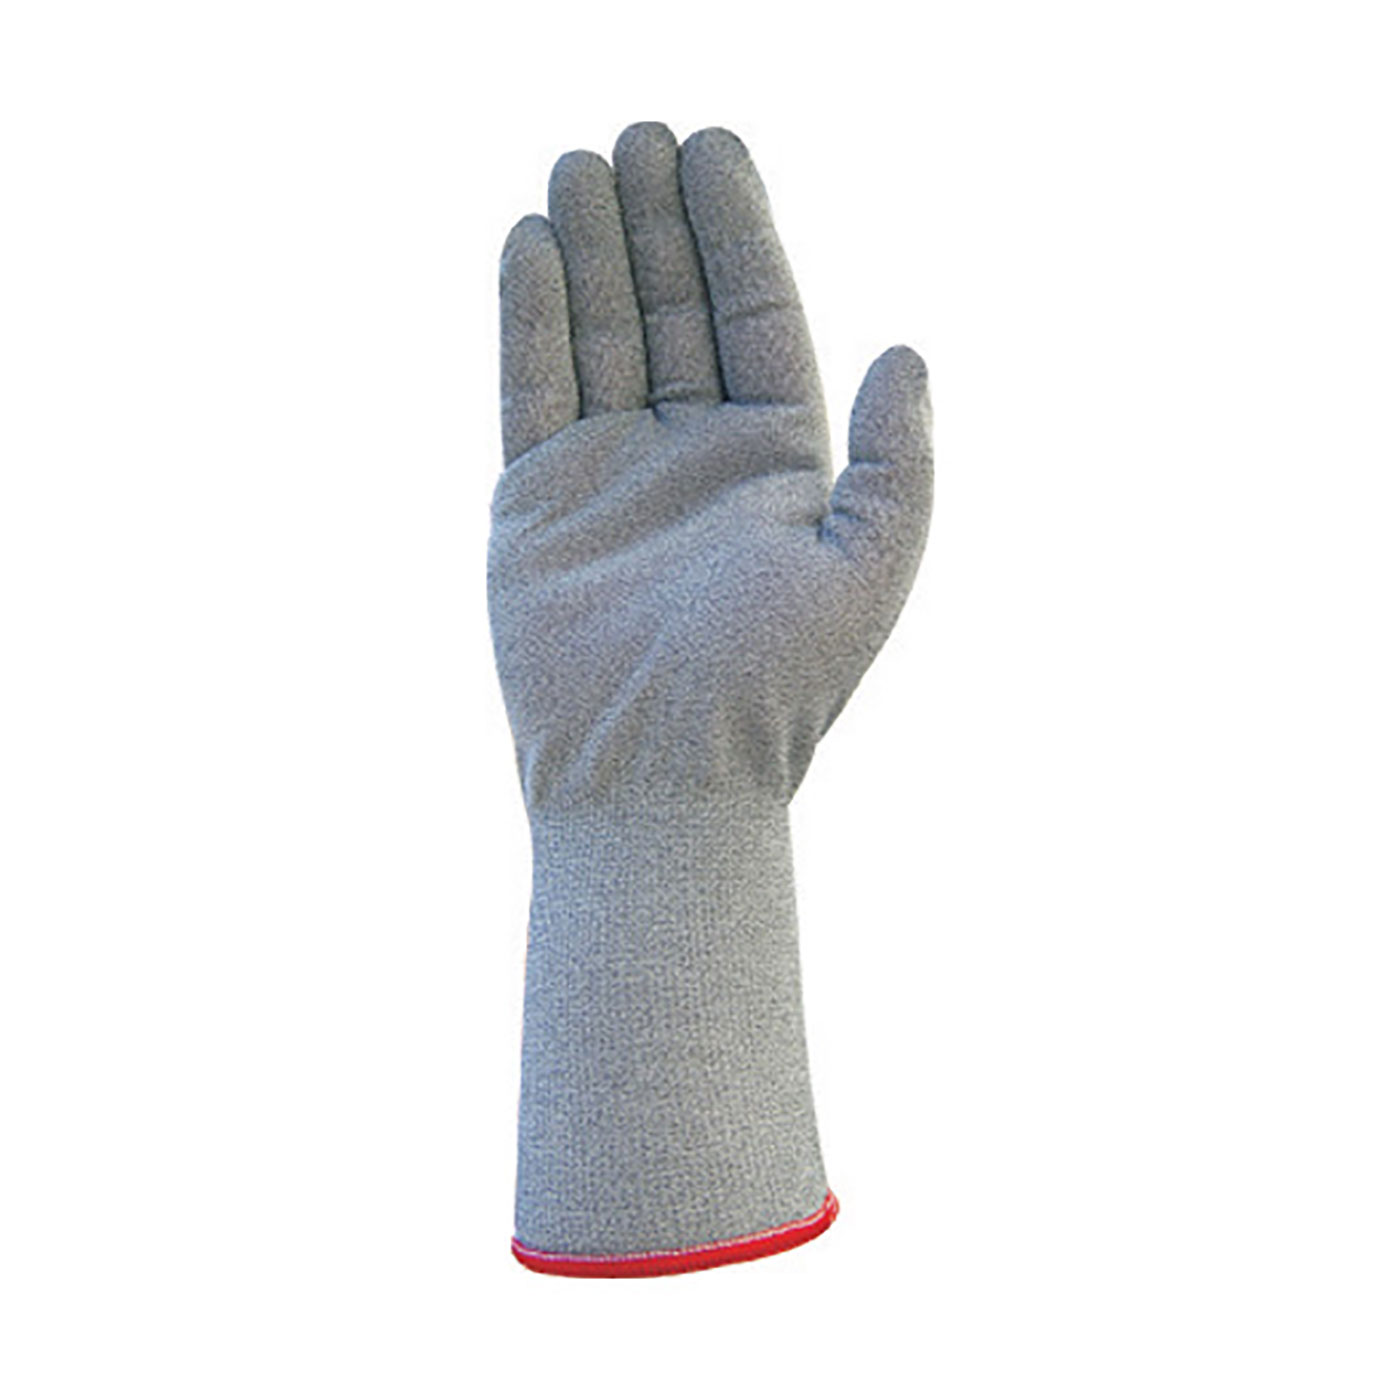 Workhorse Spectra Glove